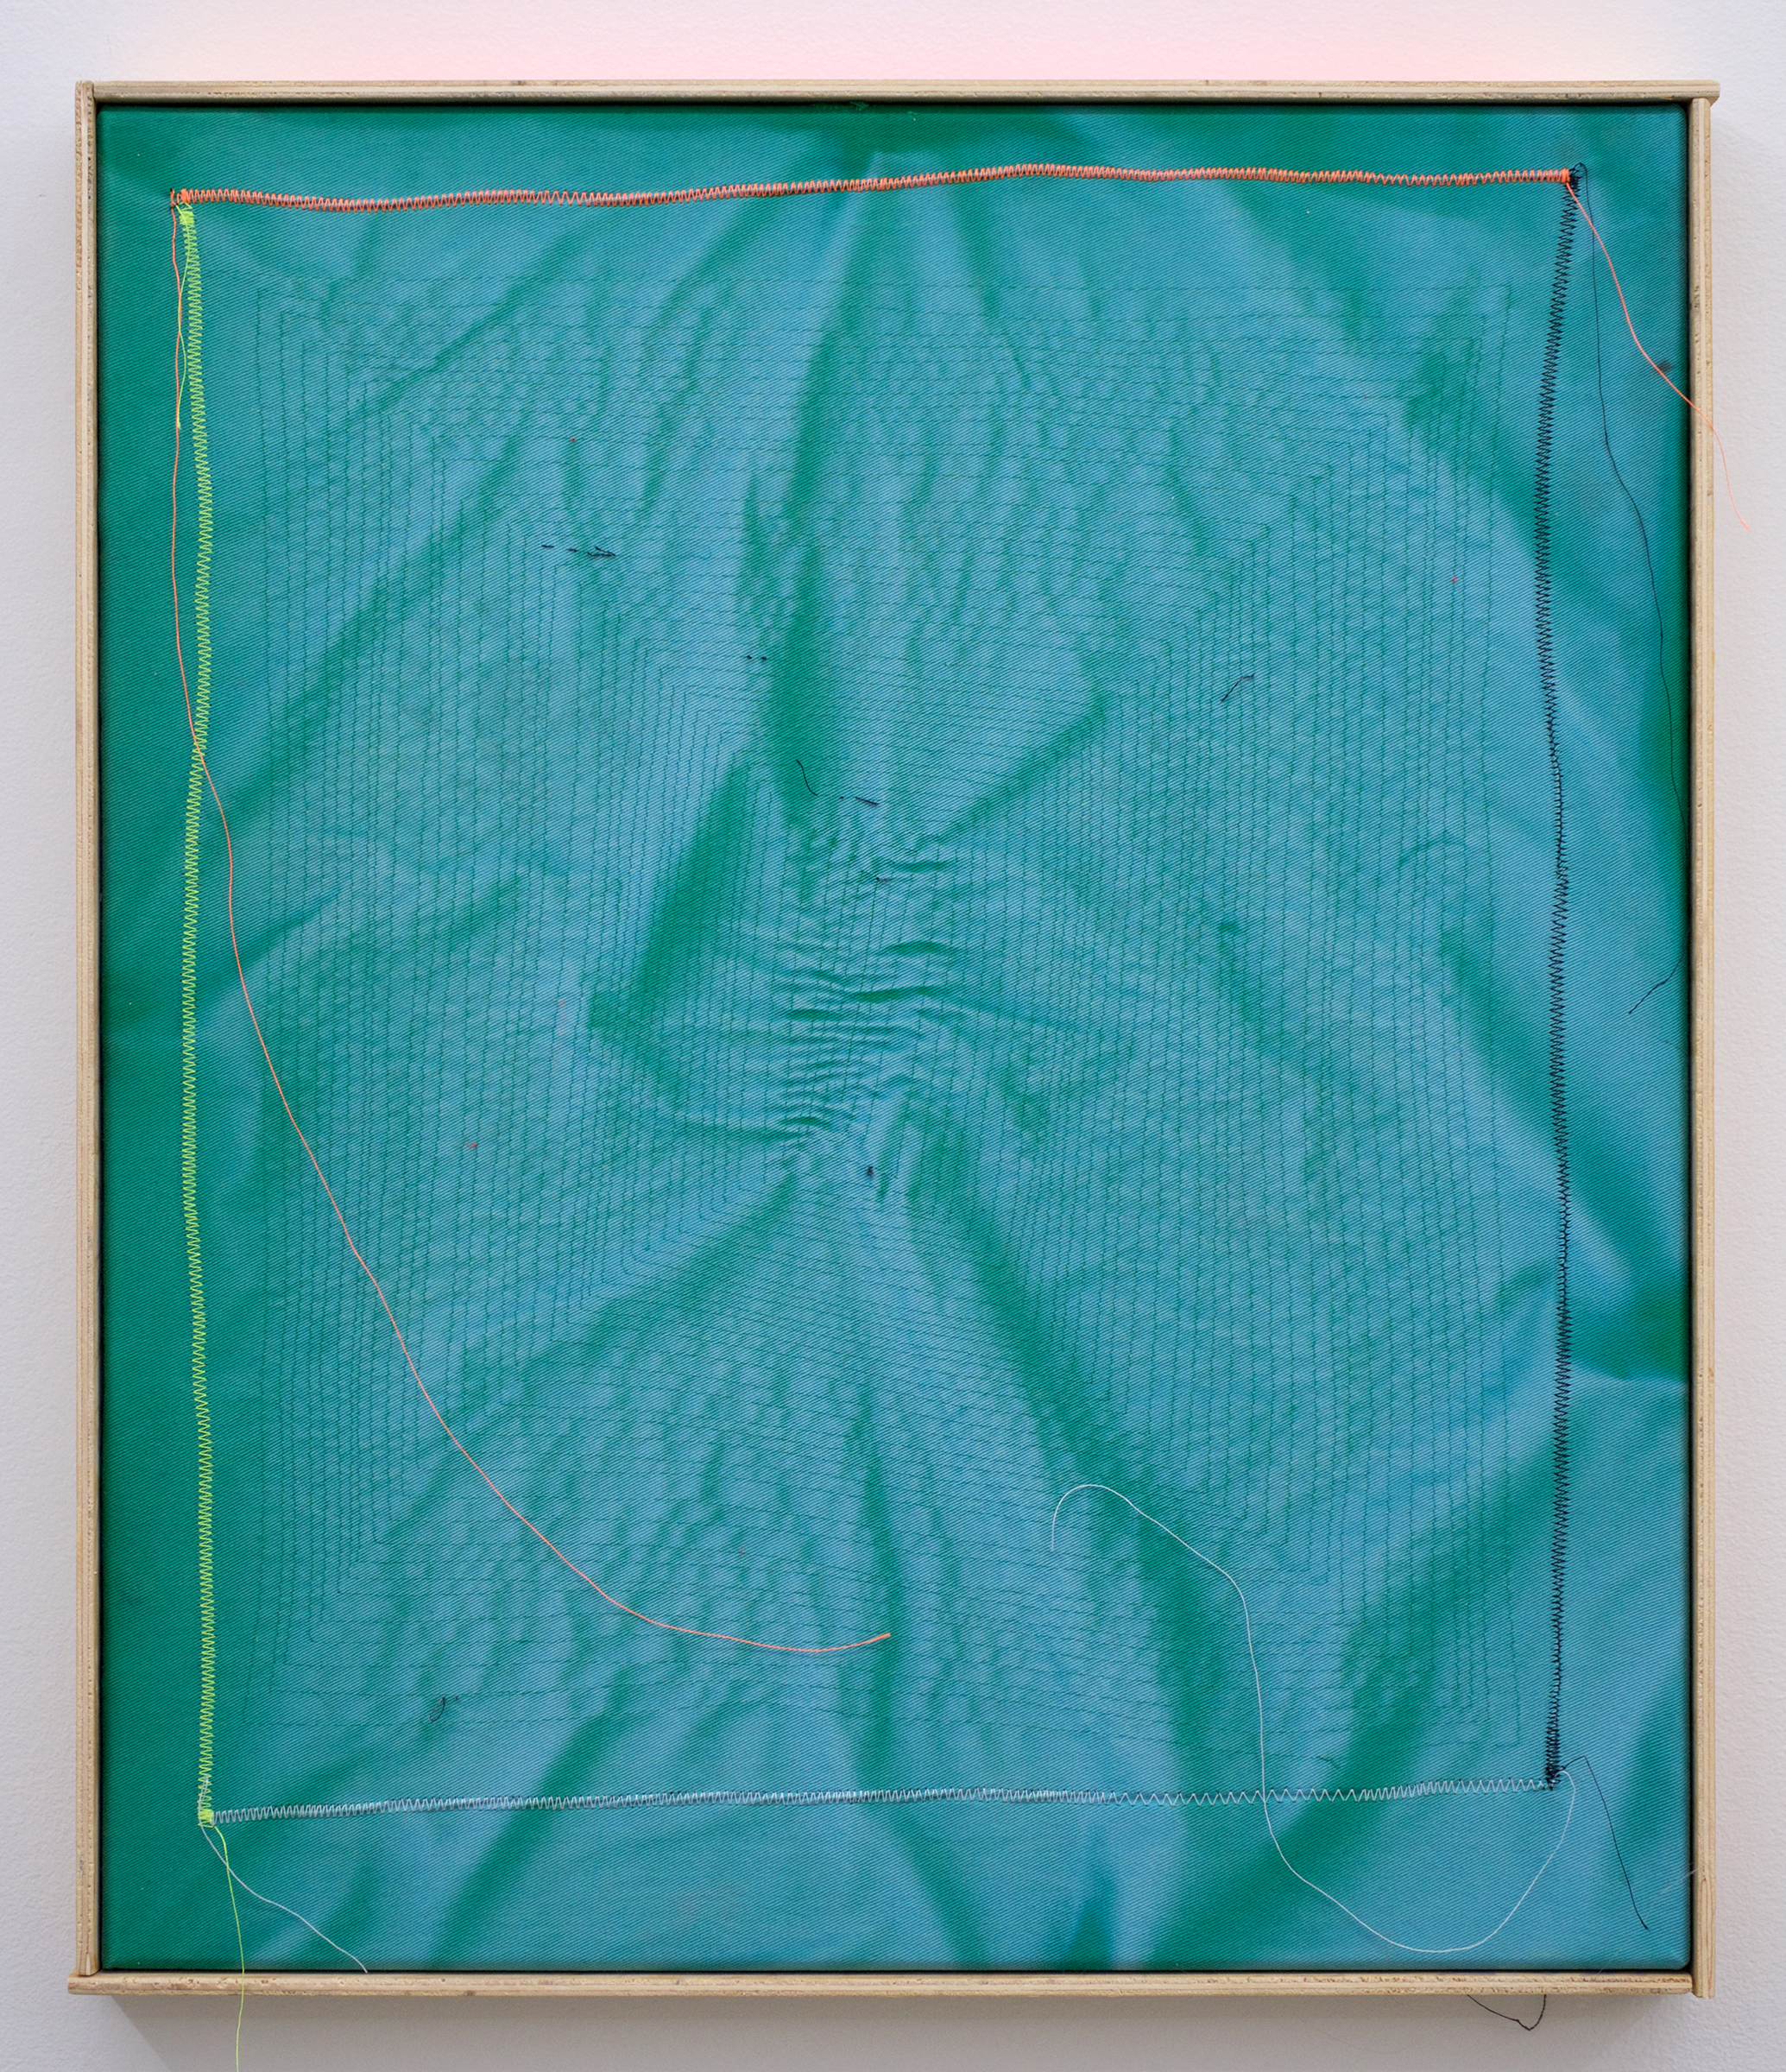 """CHRIS DUNCAN   Ghost Pattern #3 (Summer/Winter 2016) Six-Month Exposure/Oakland , 2017, sun, time and thread on fabric, 20 1/2"""" x 17 3/8"""""""